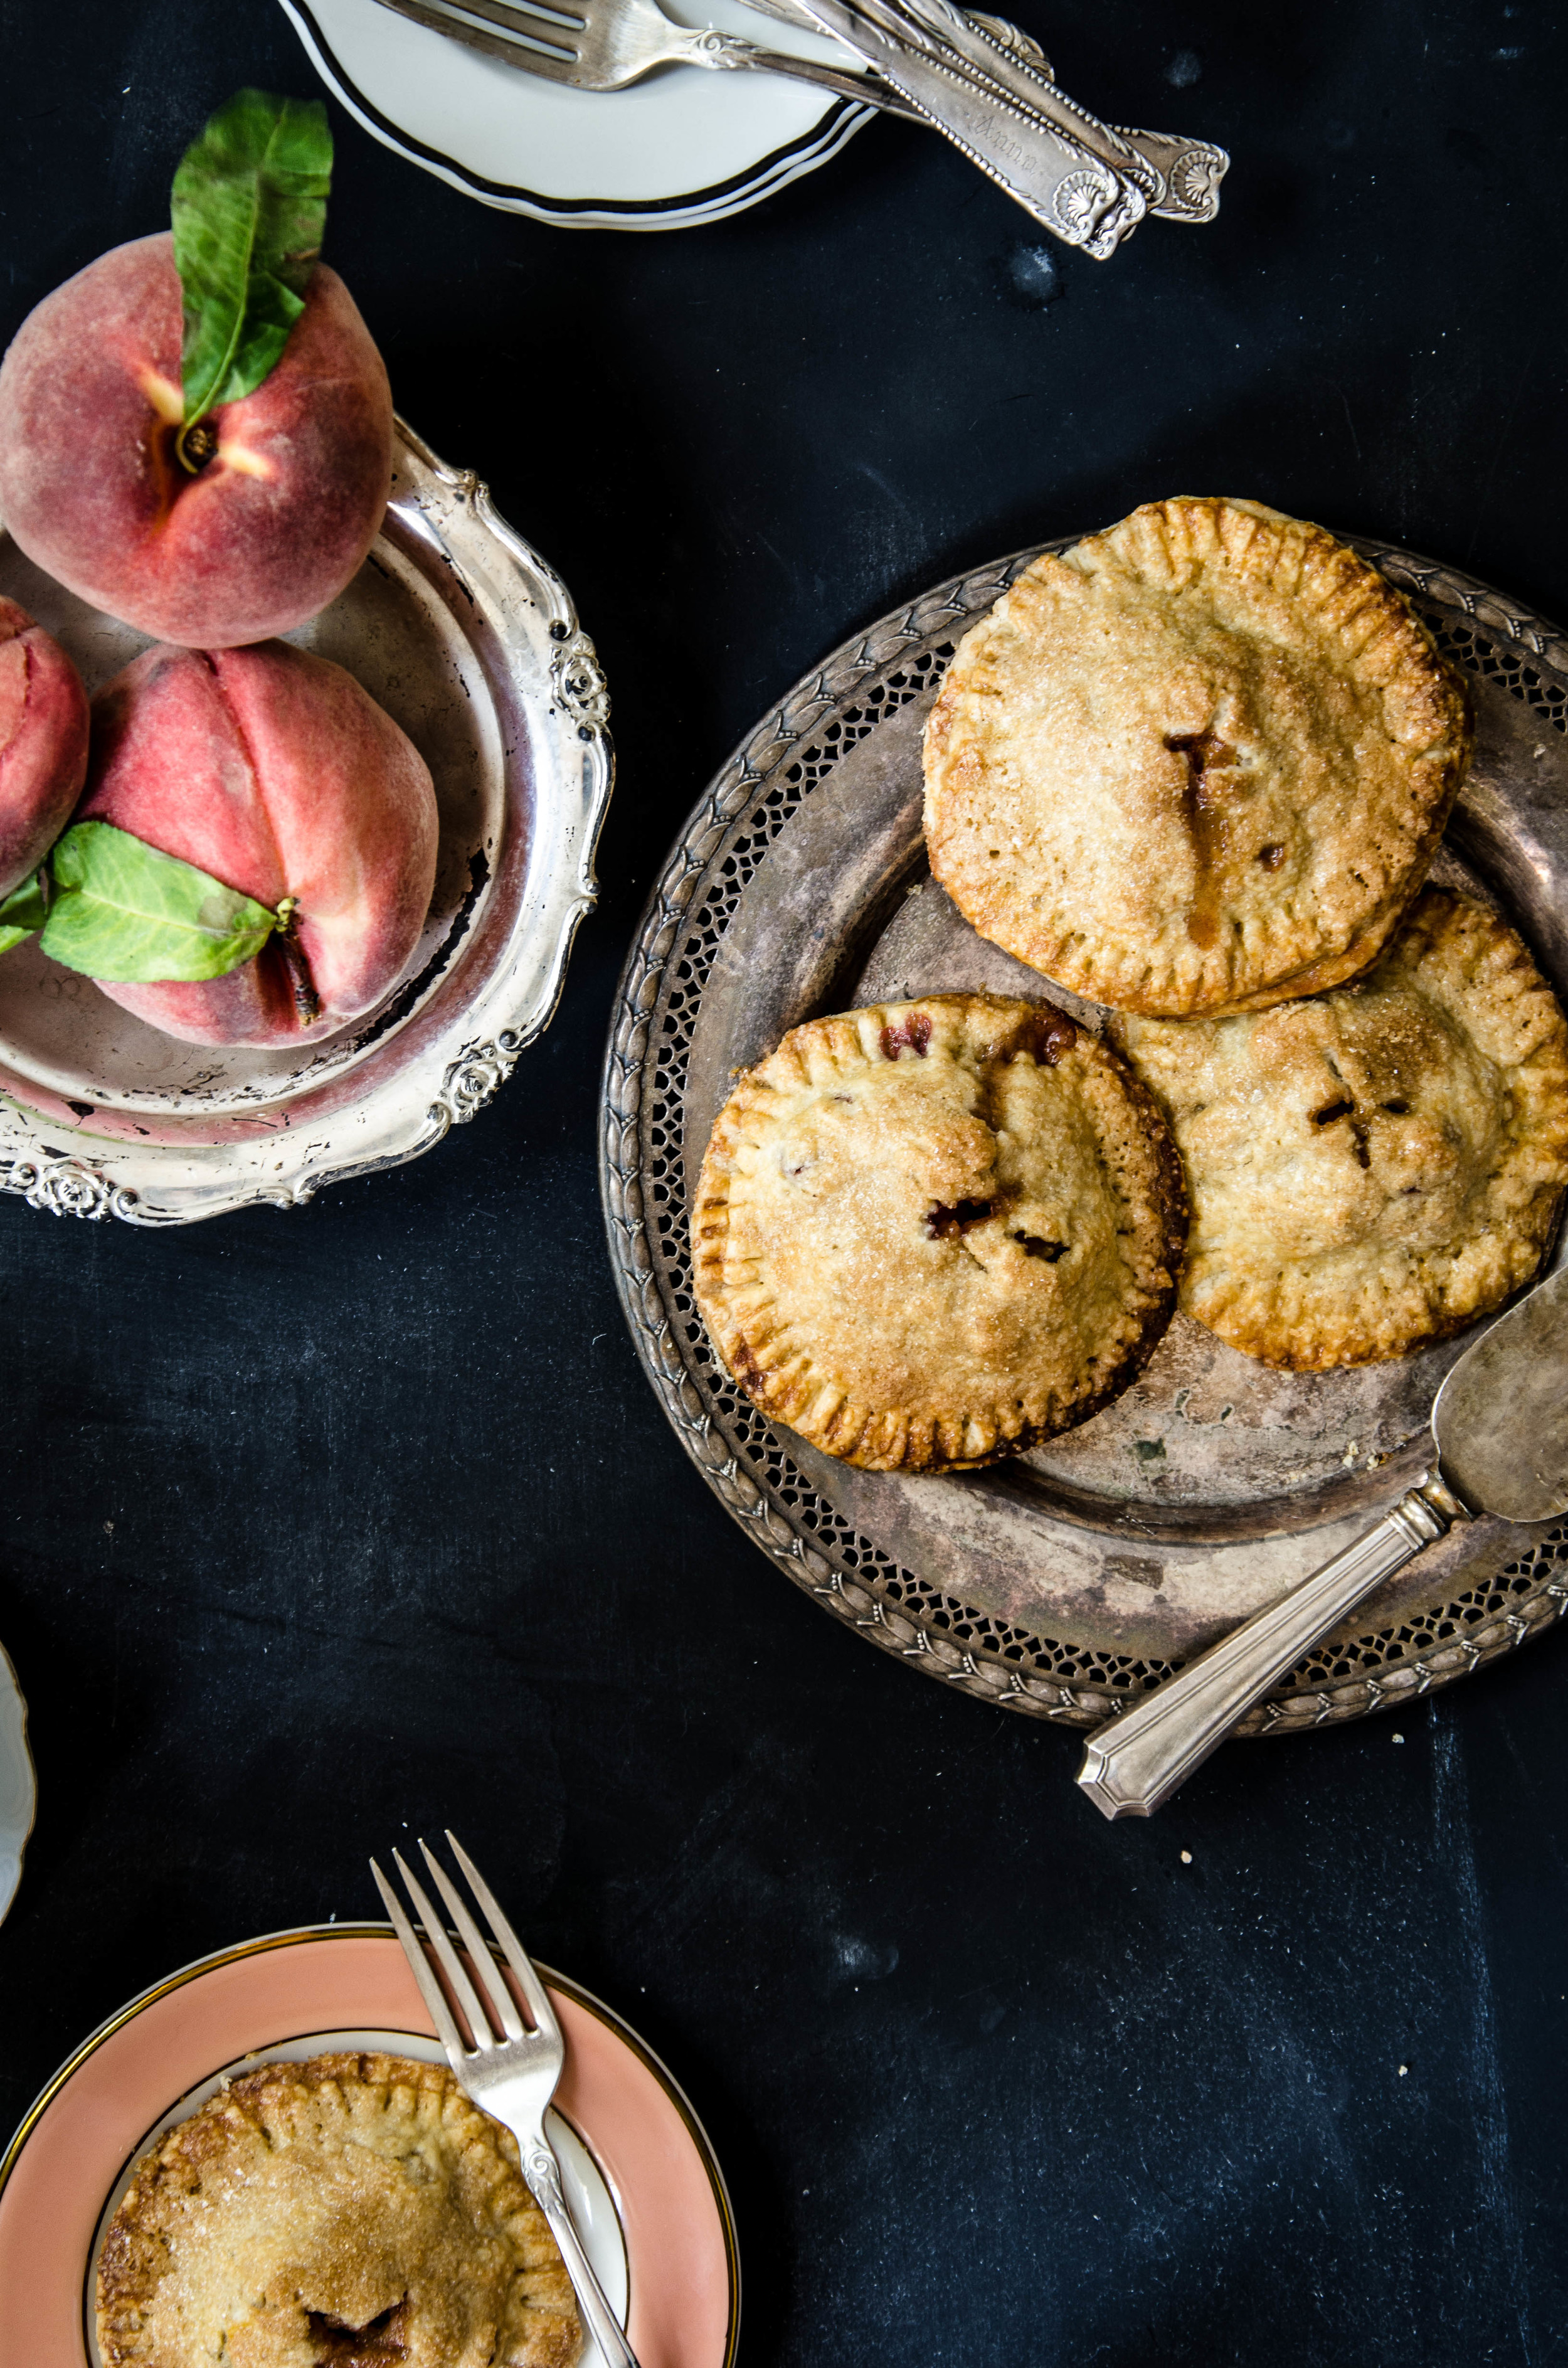 ROSE & IVY Journal Spiced Peach Hand Pies